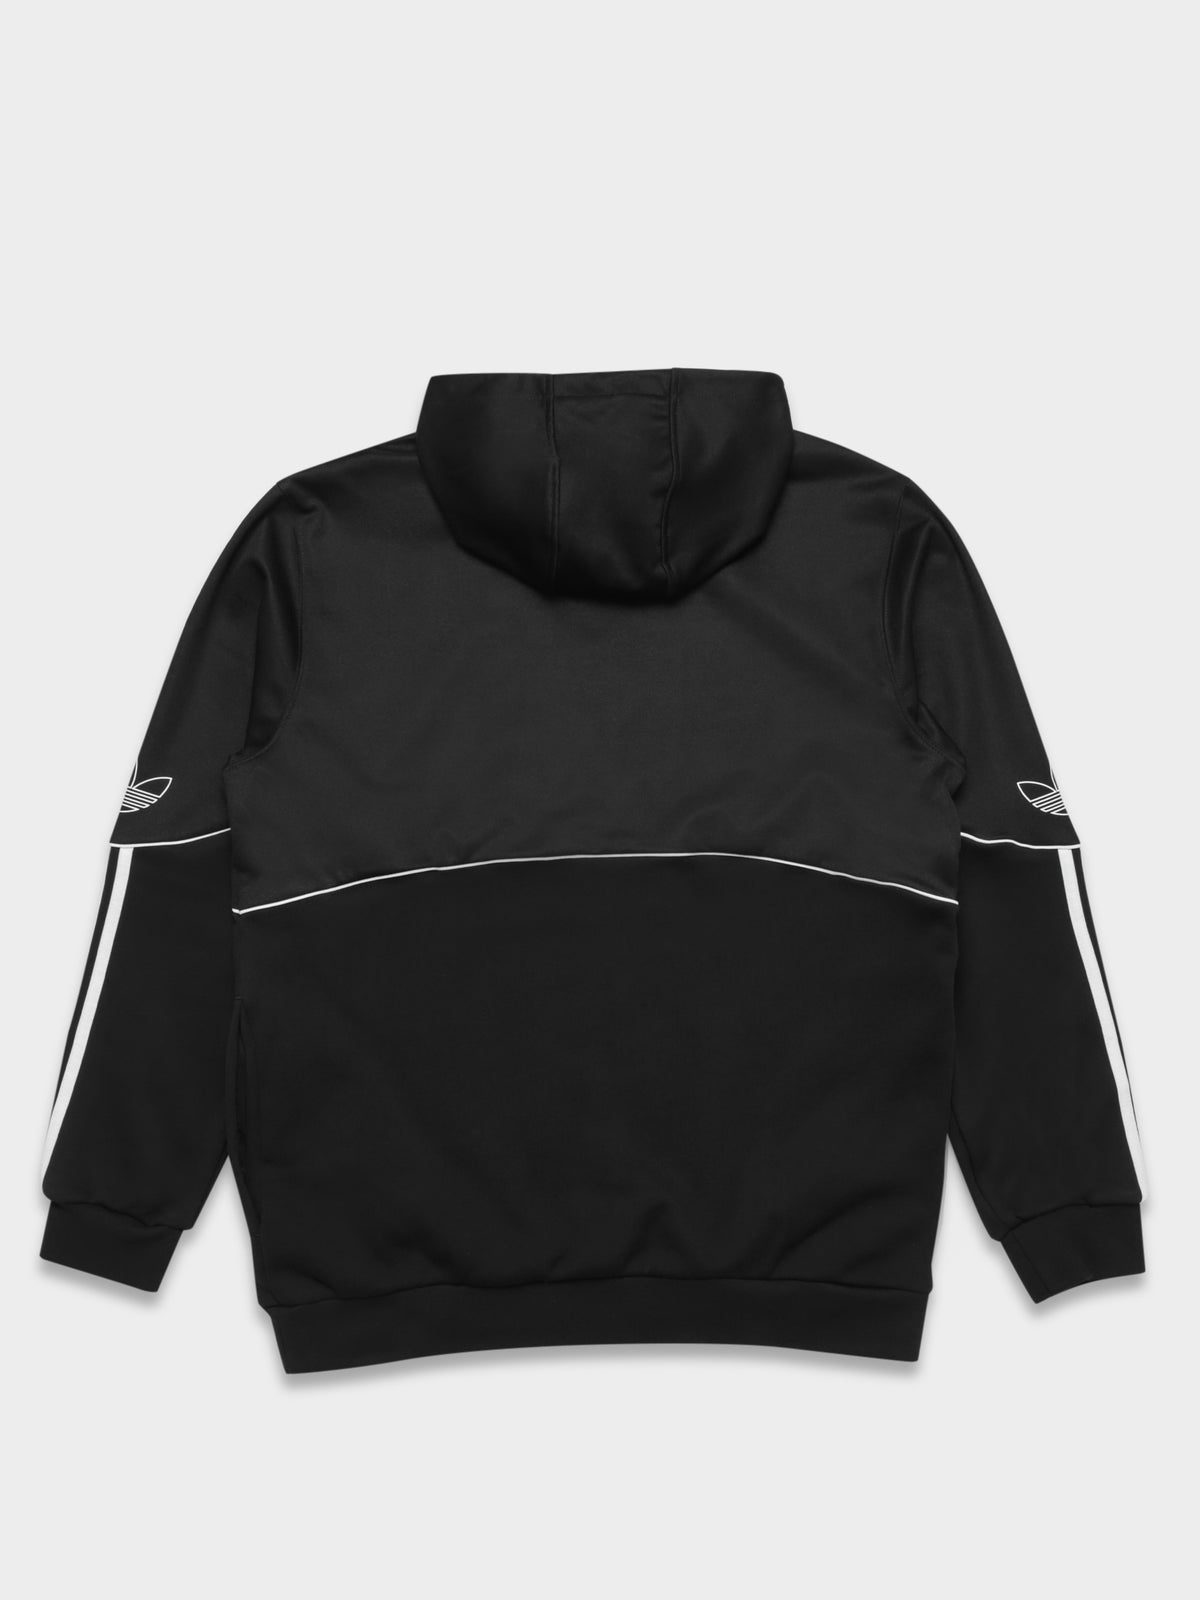 Outline Hoodie in Black & White